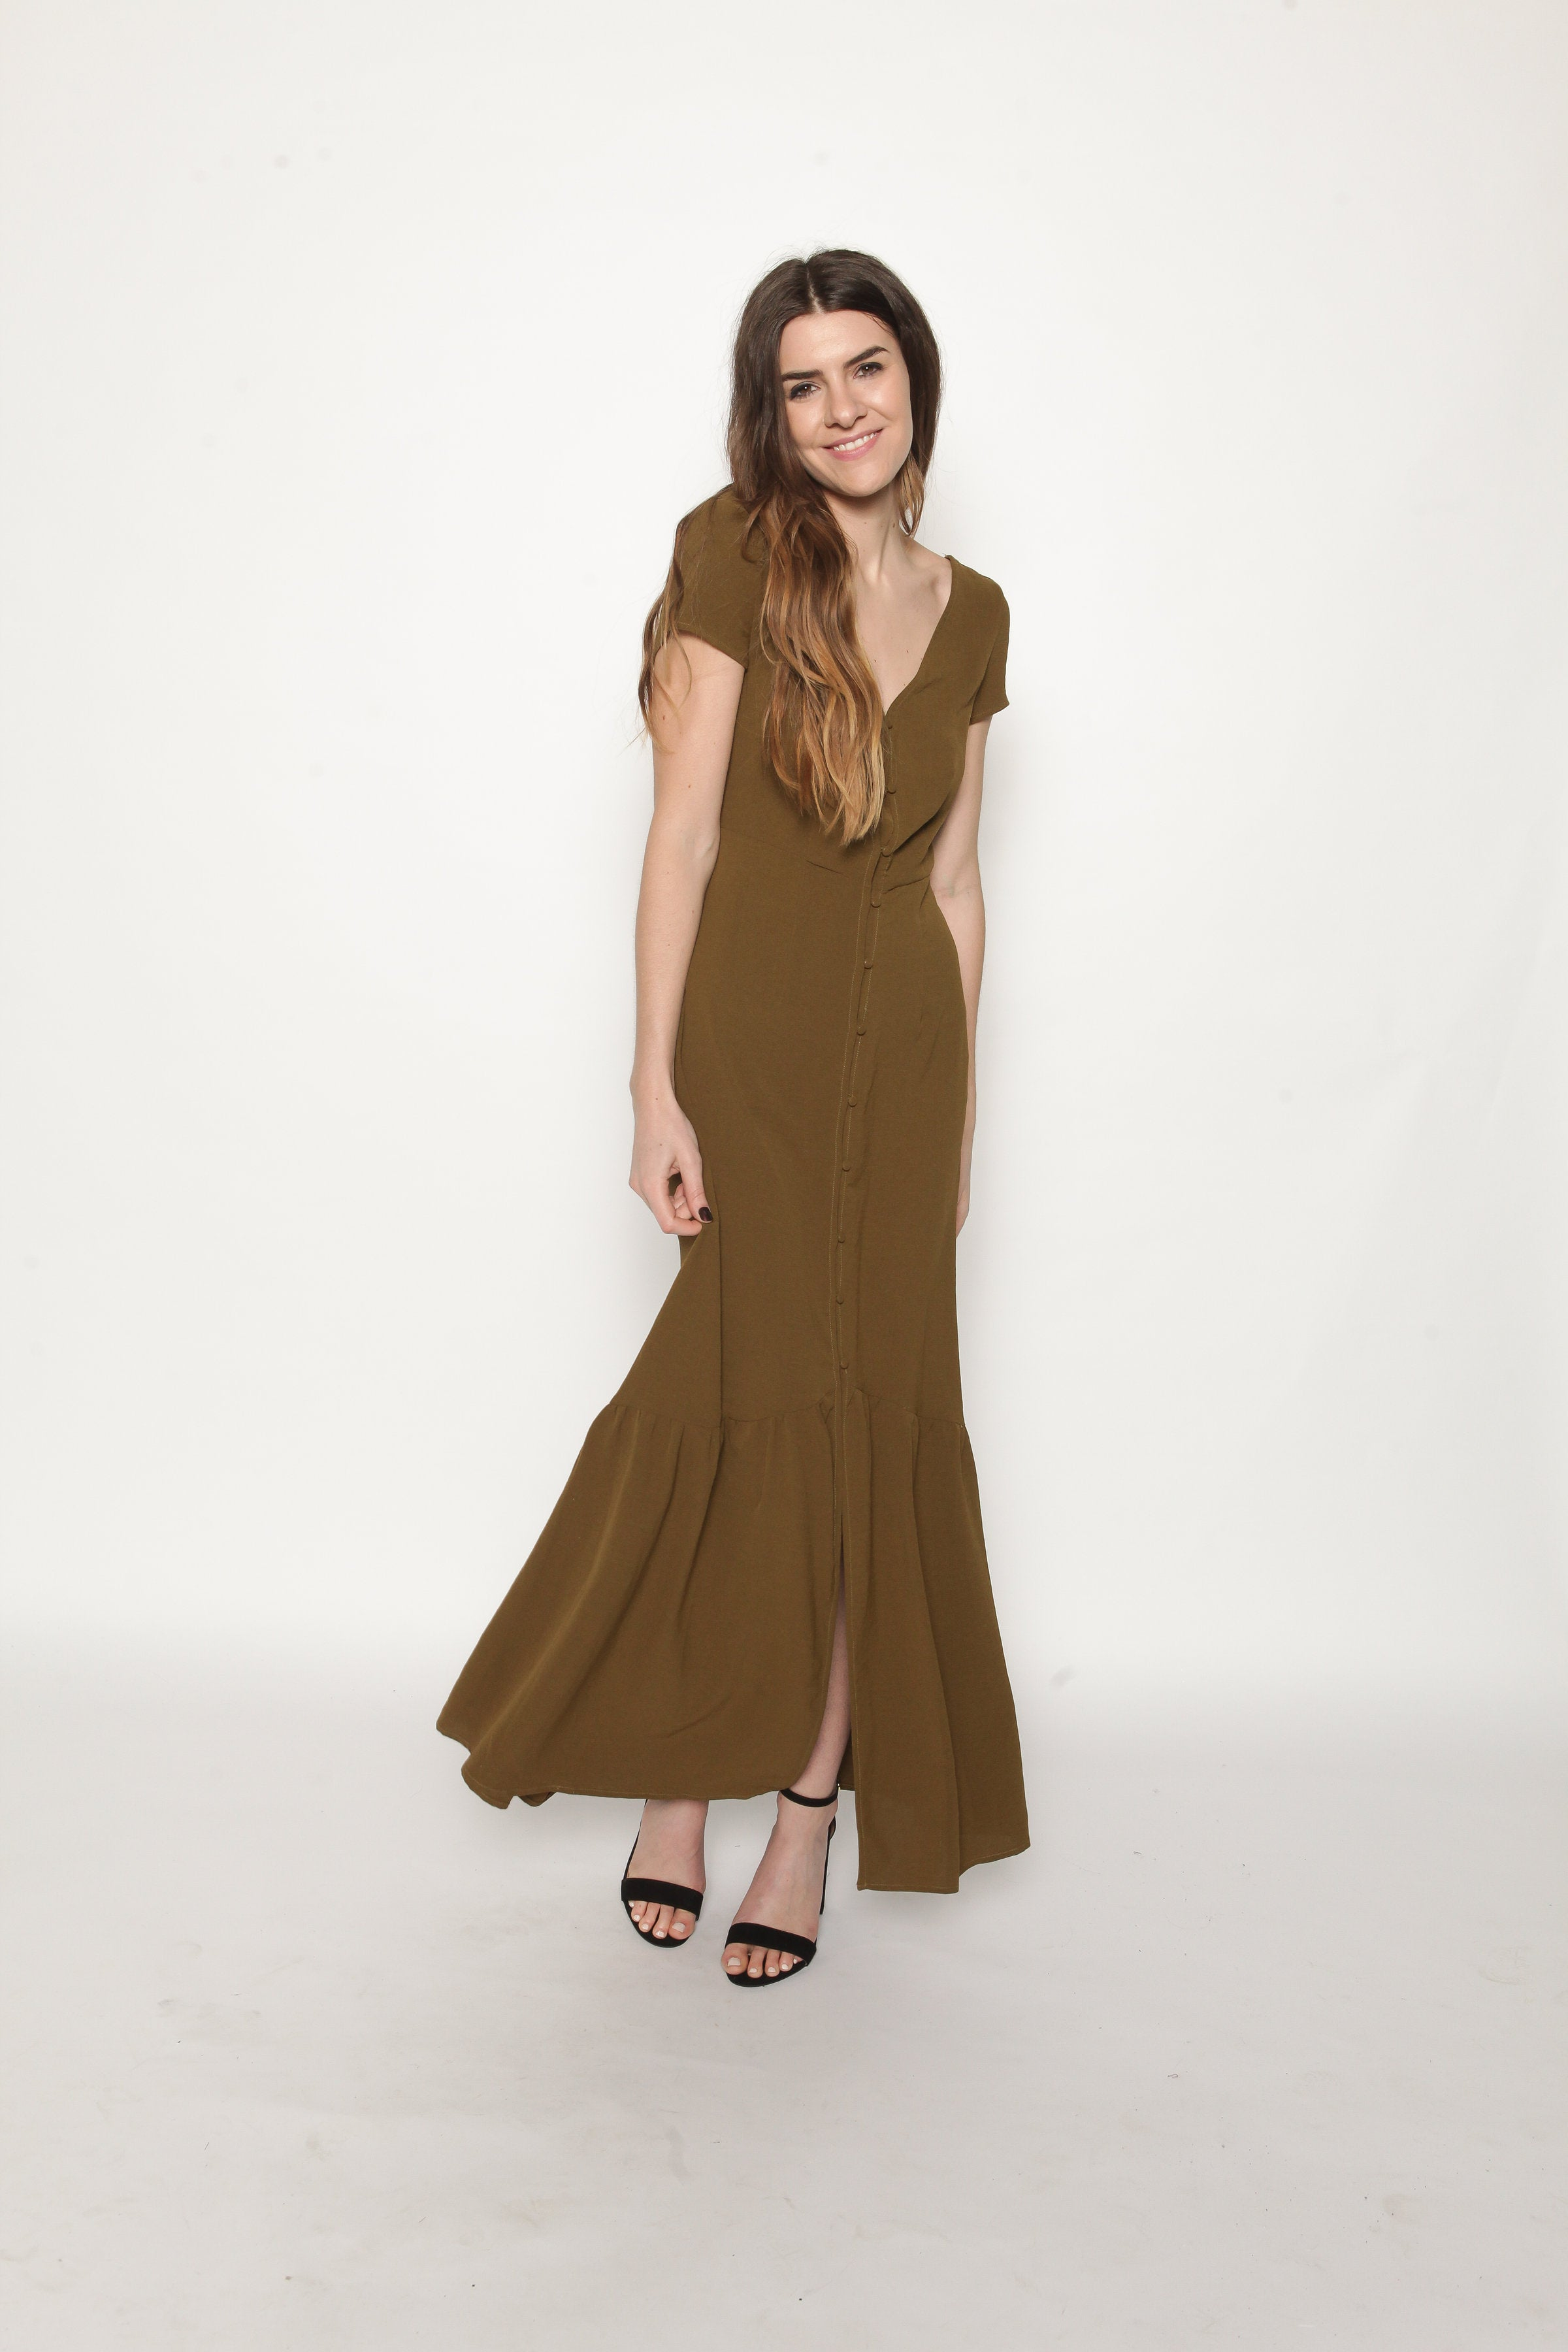 Donna Button-Up Maxi Dress - Olive